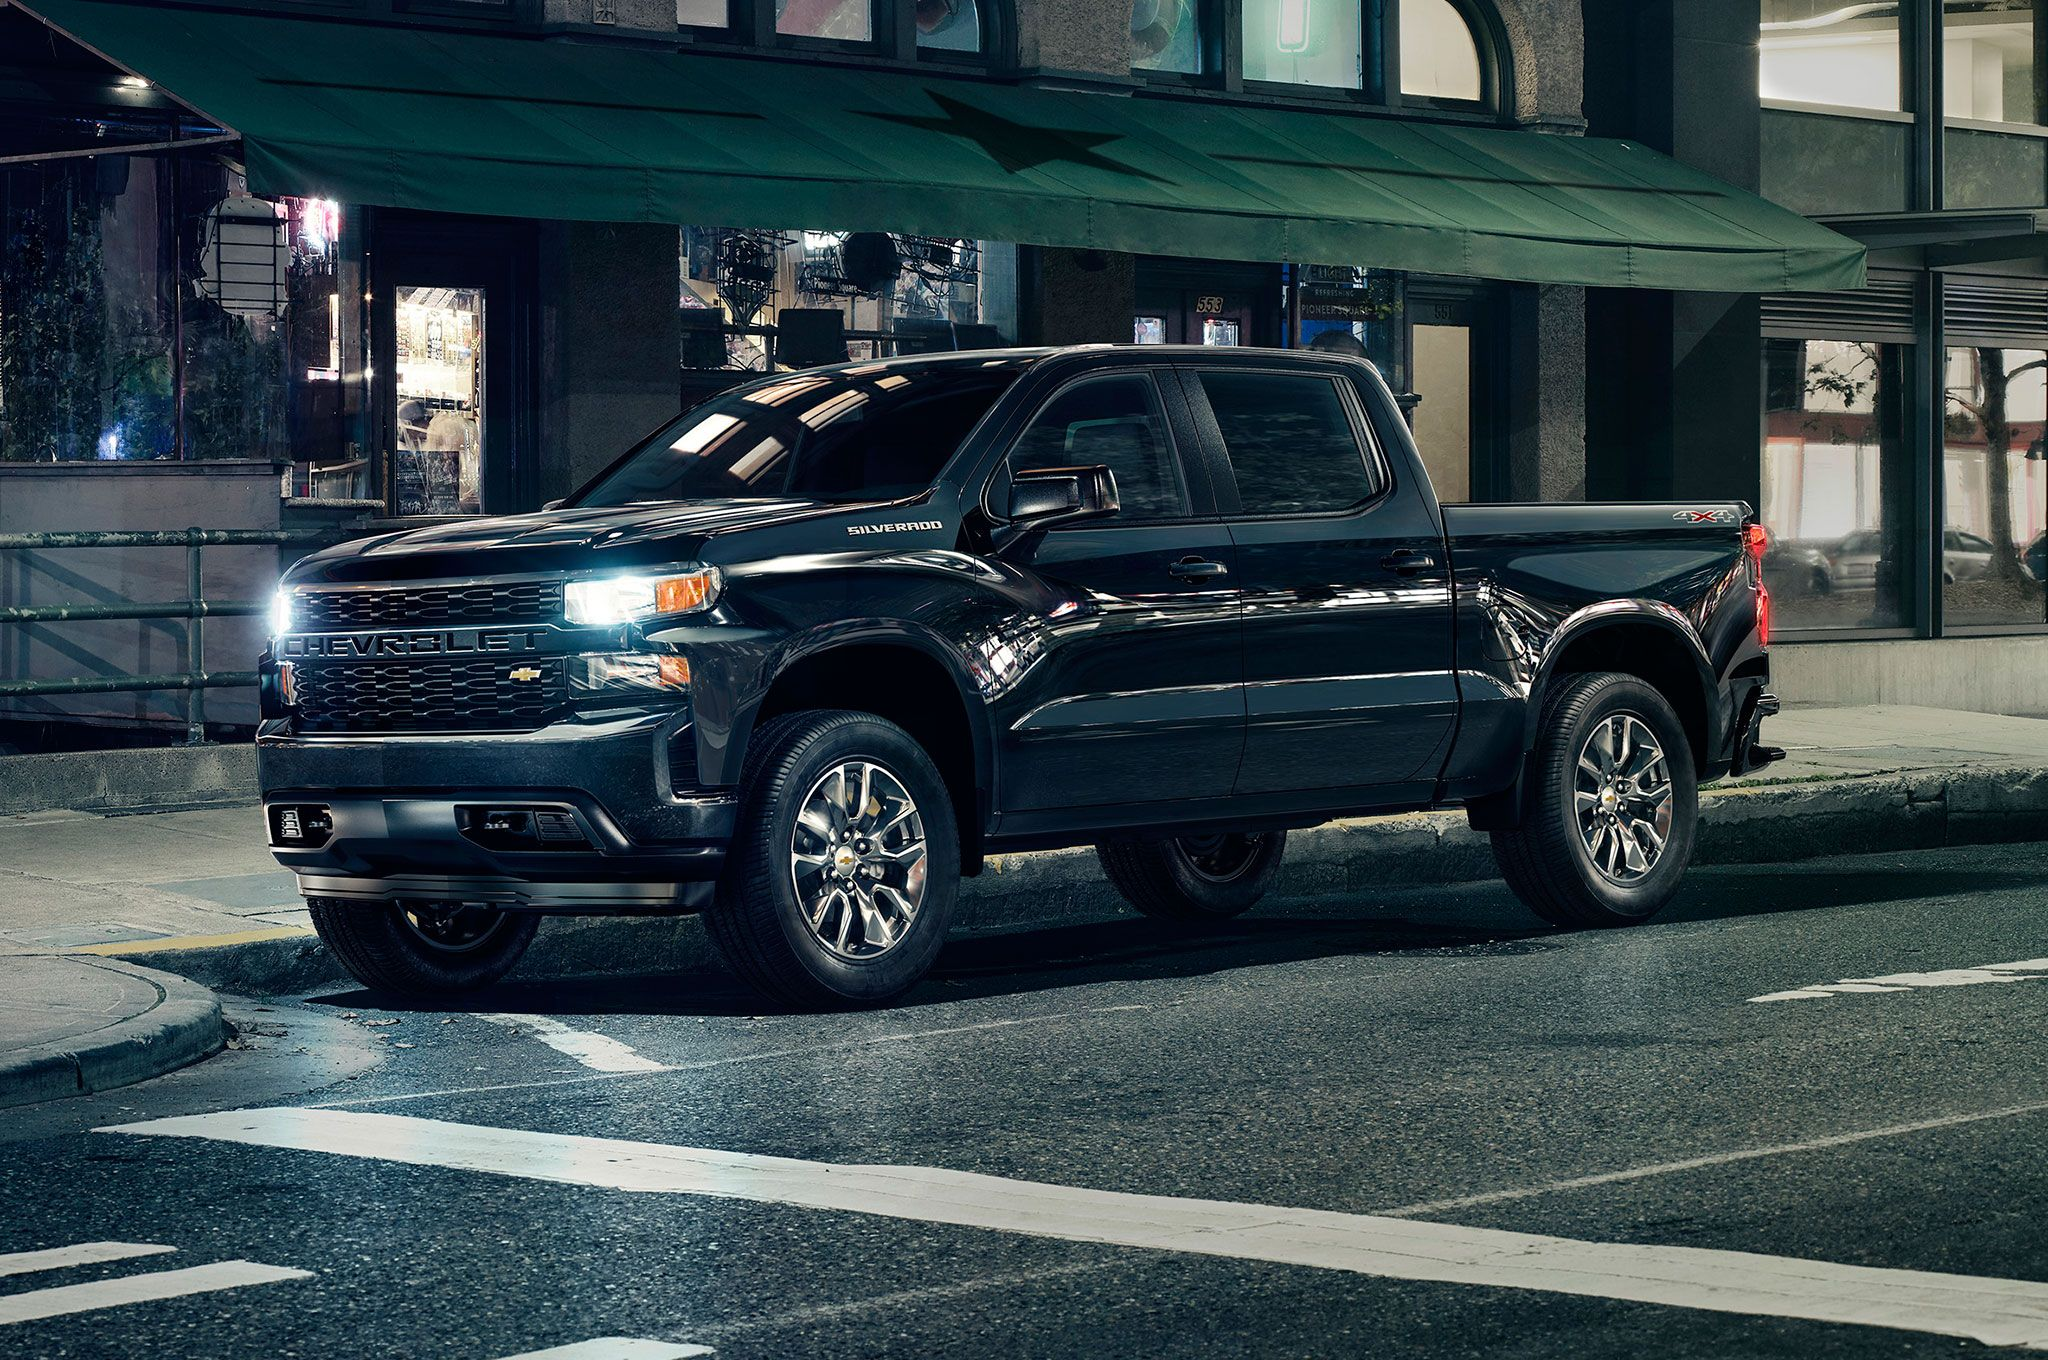 2019 Chevrolet Silverado 1500 In City The Bow Tie Readies An All